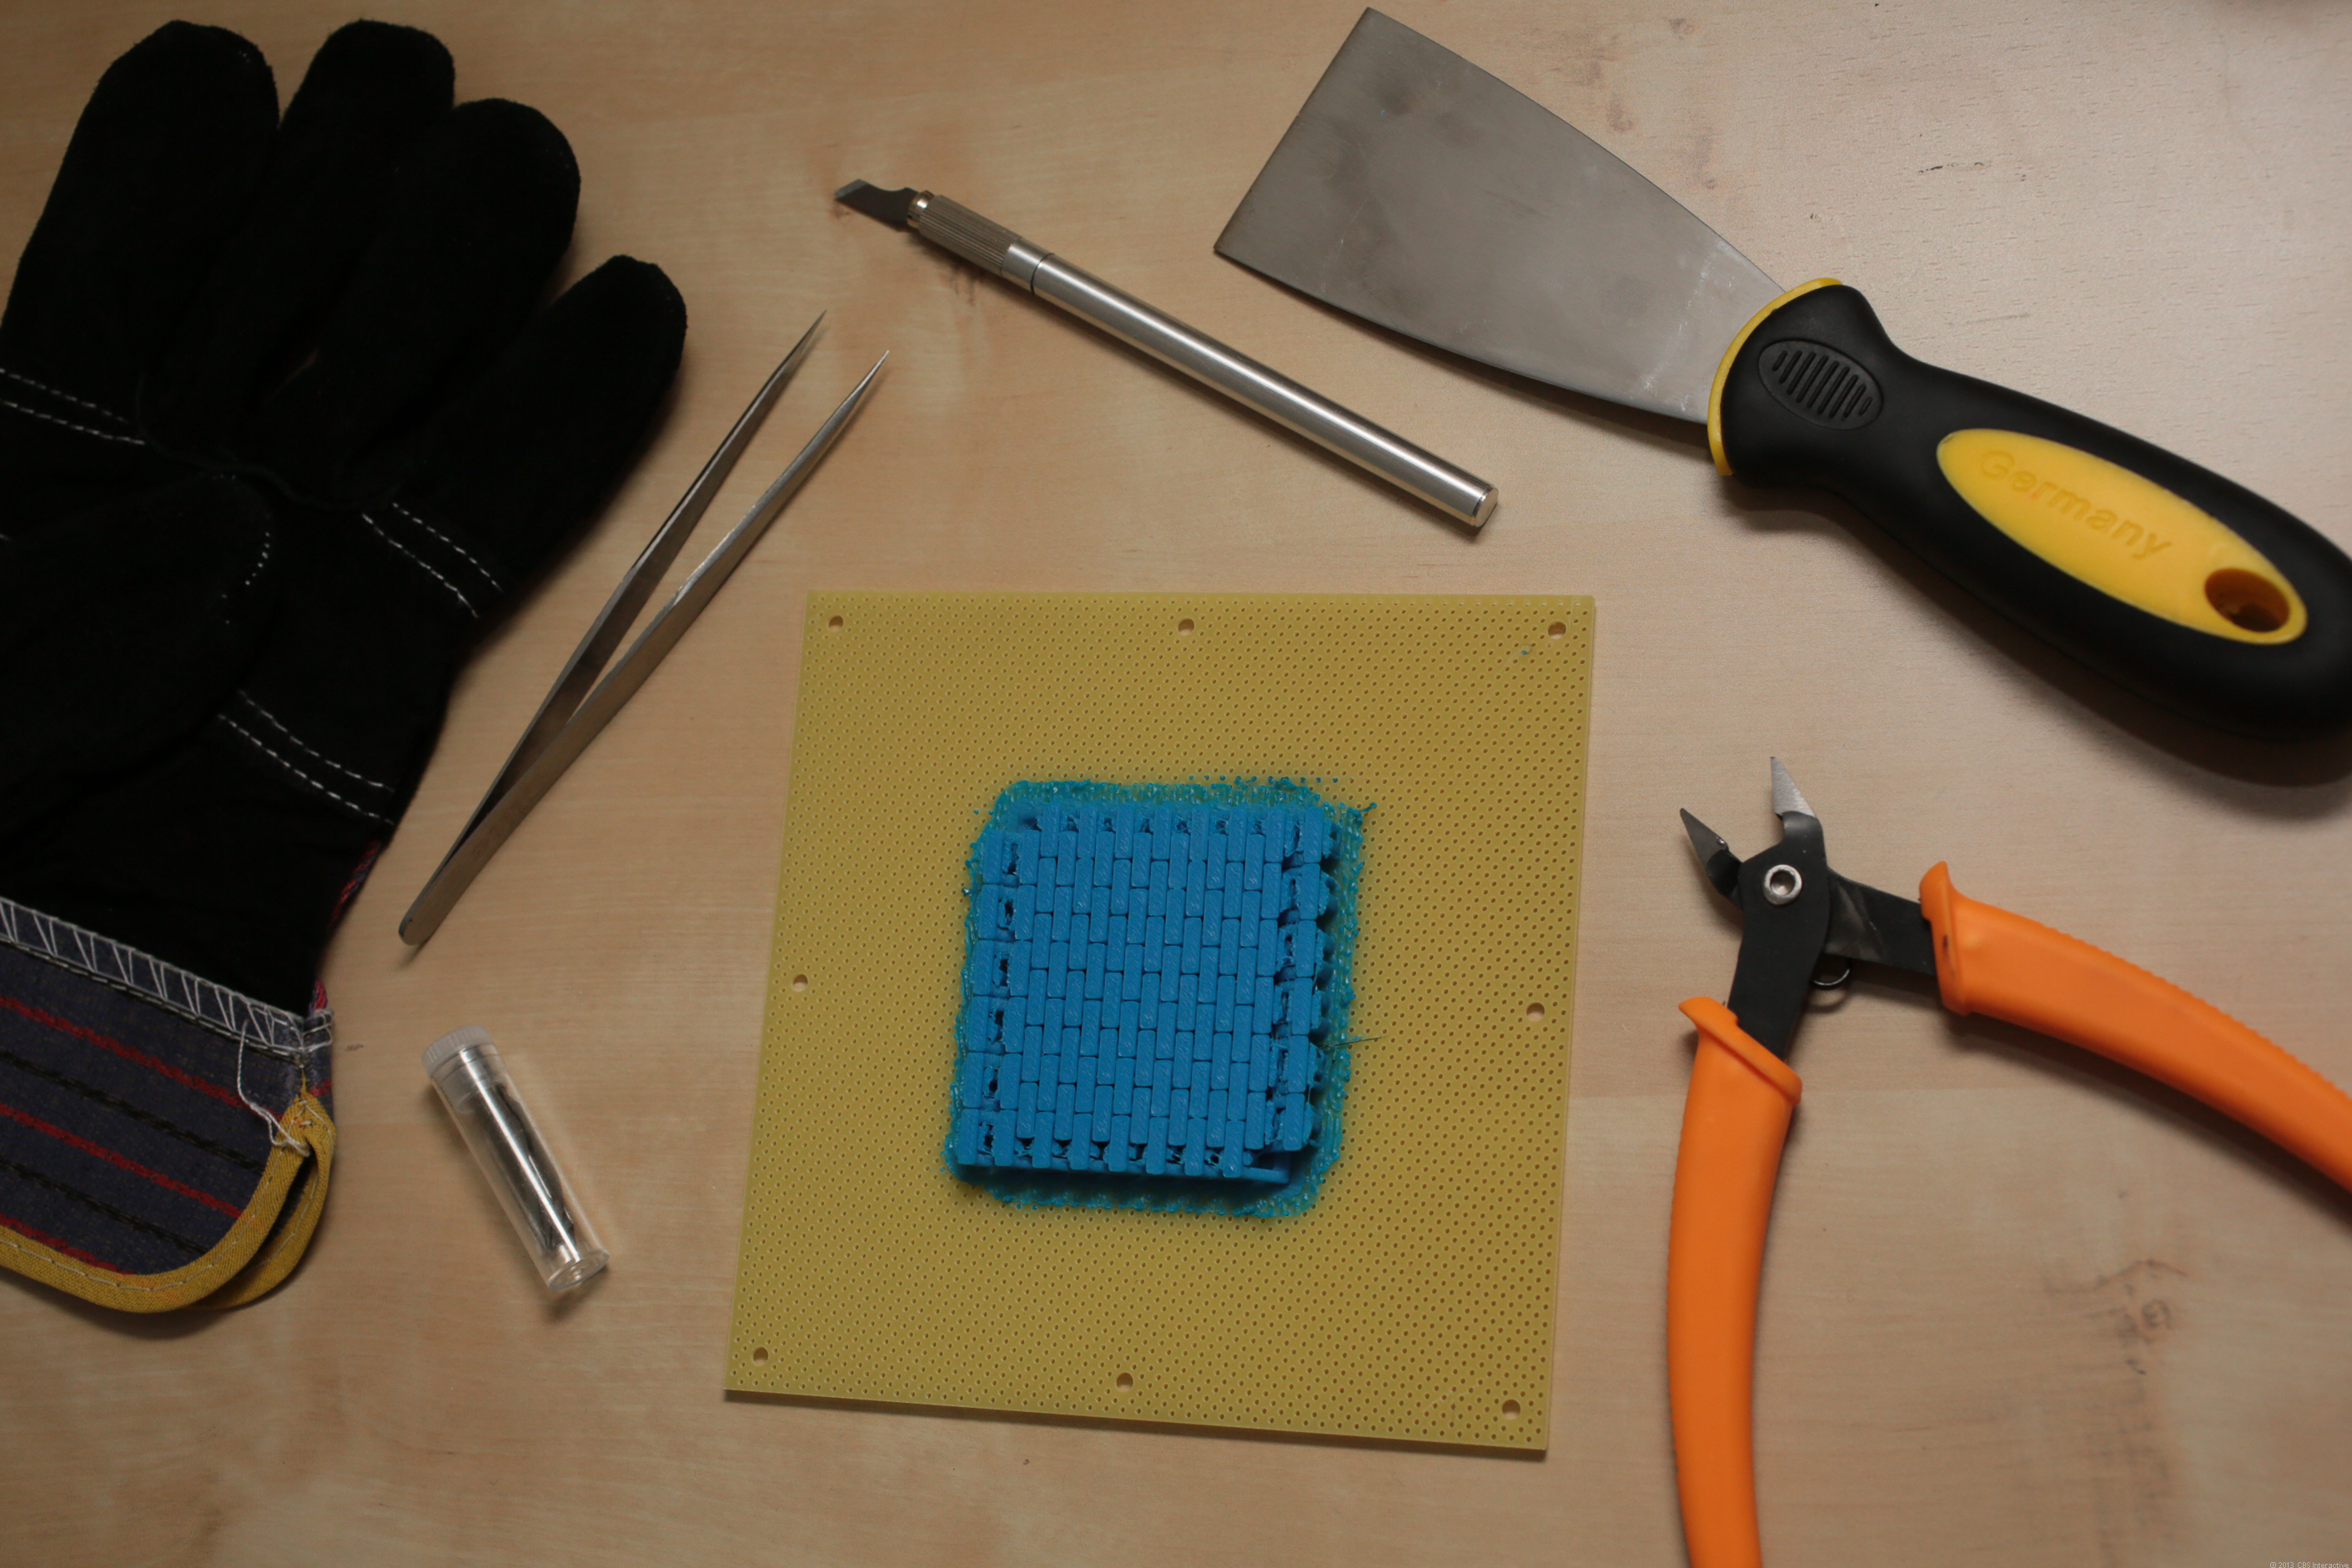 An assortment of tools included with the printer.